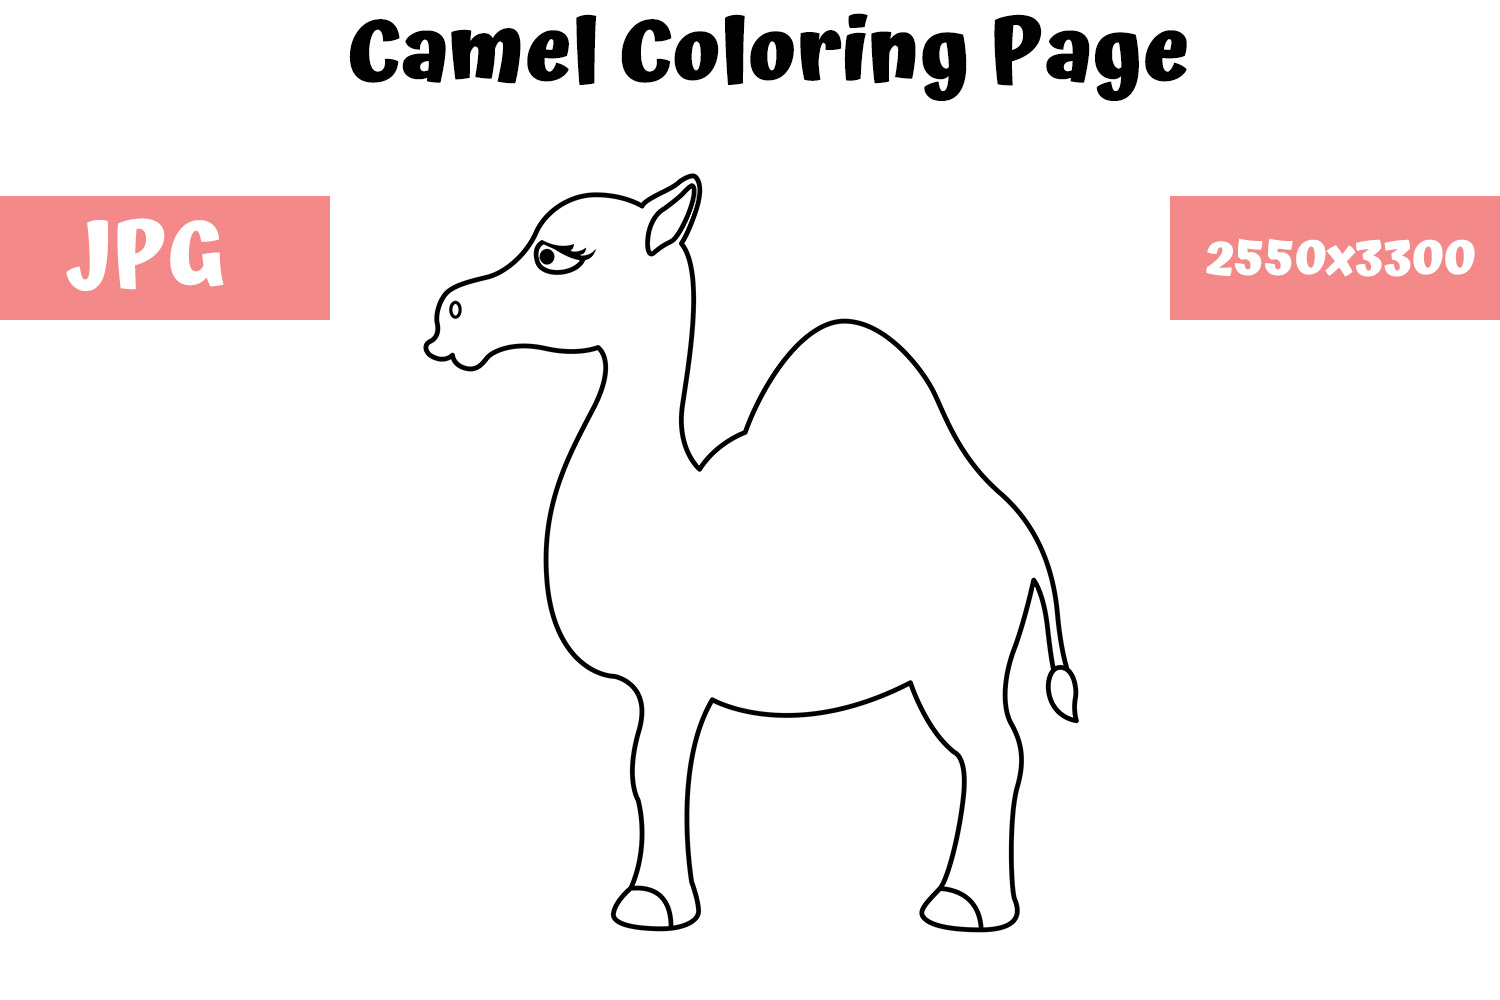 Download Free Camel Coloring Page For Kids Graphic By Mybeautifulfiles for Cricut Explore, Silhouette and other cutting machines.